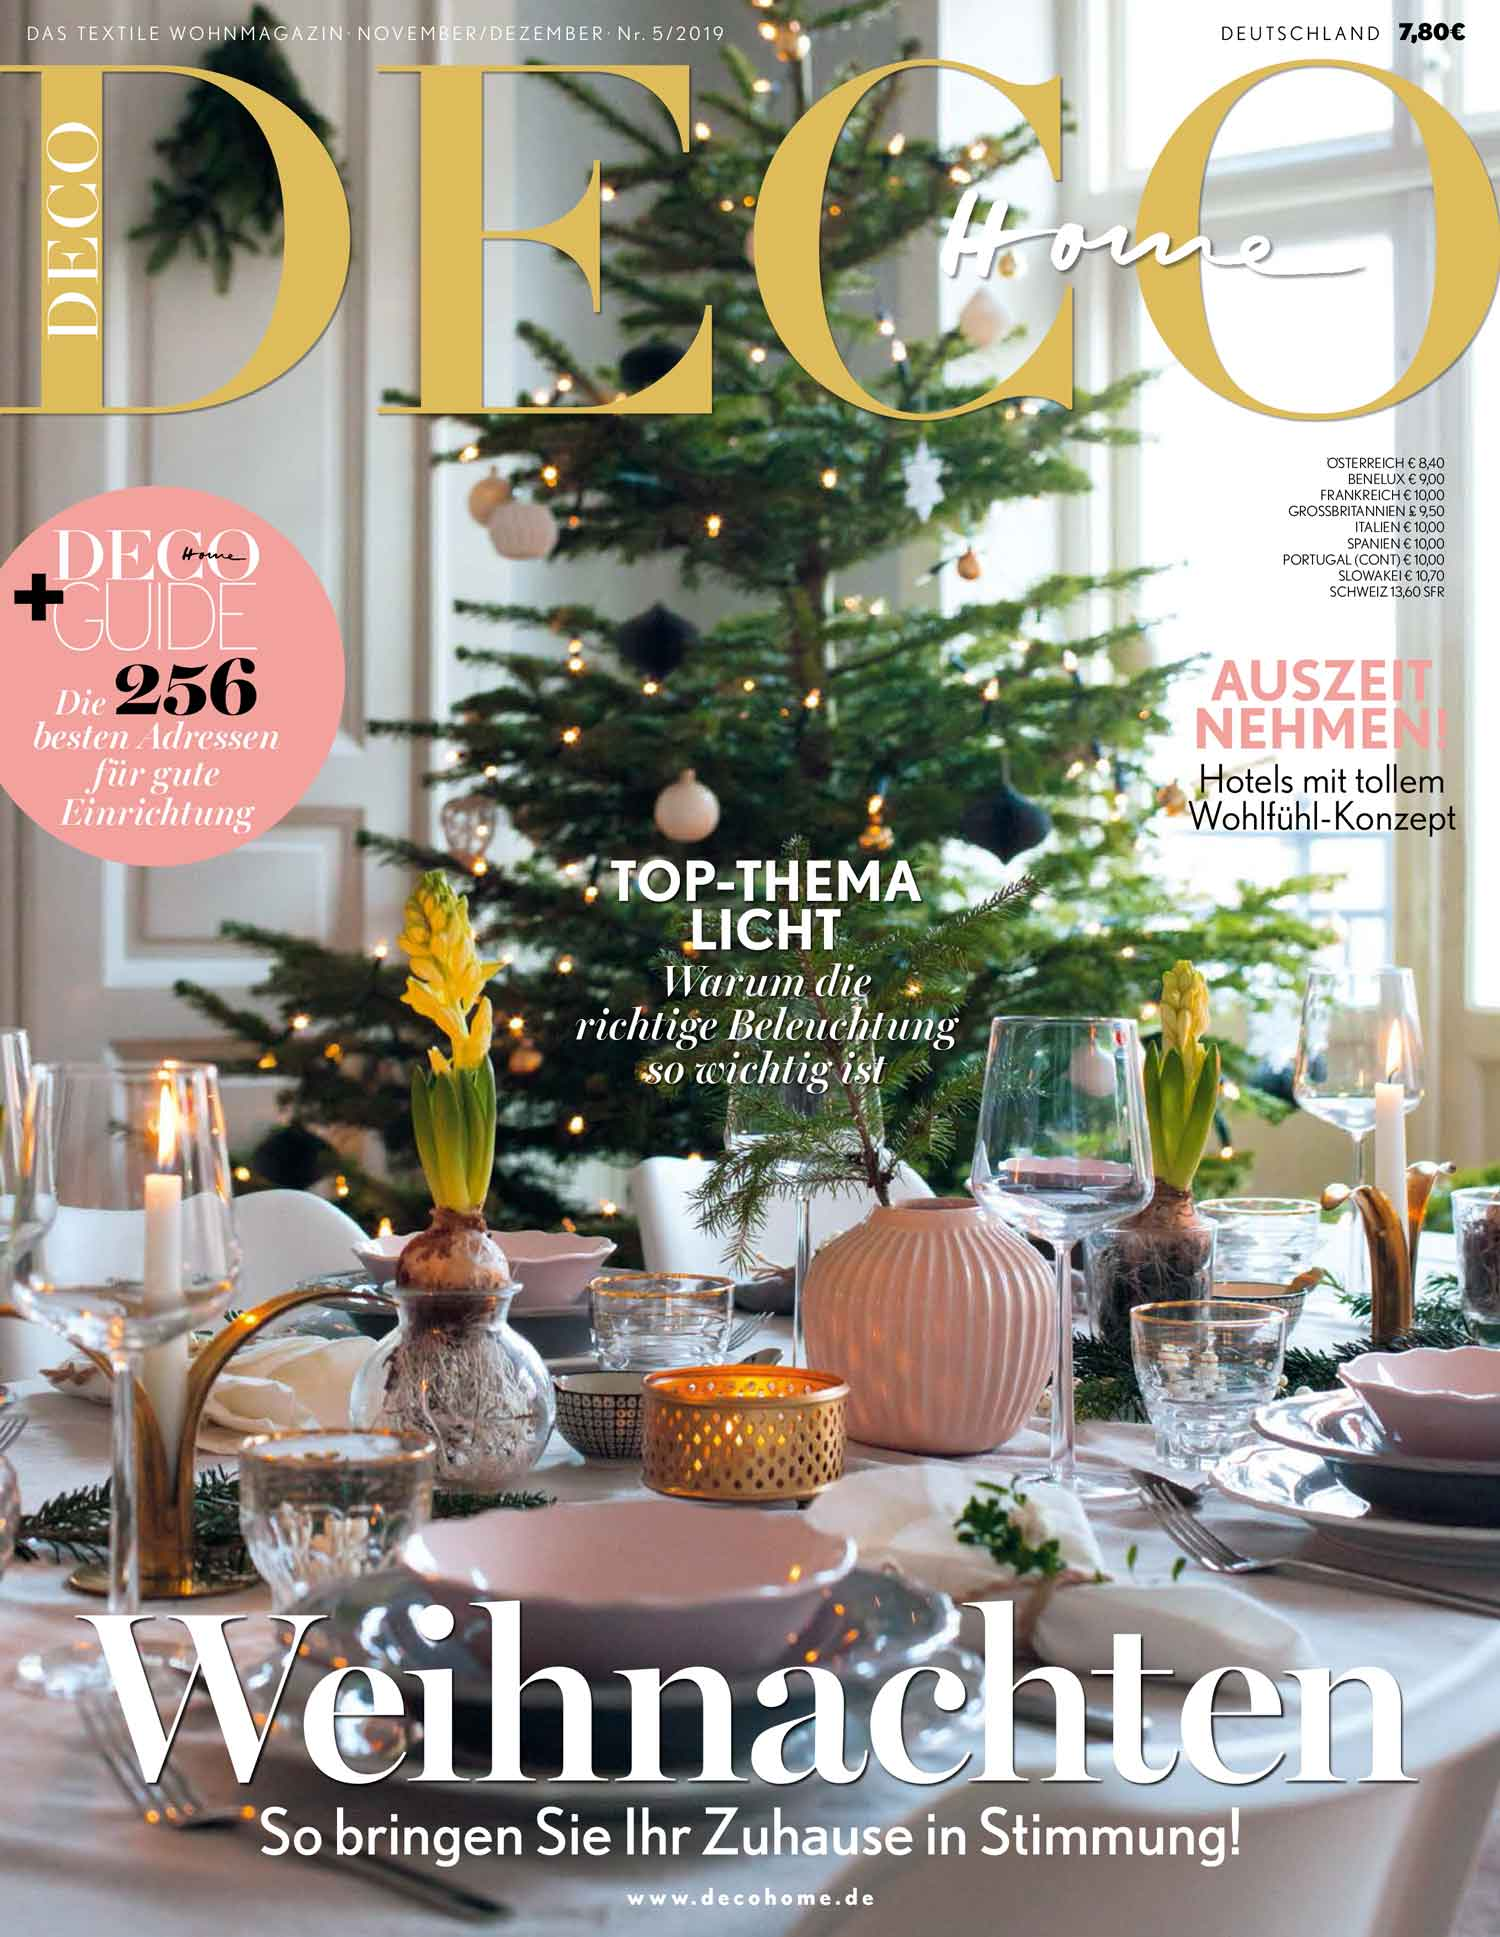 deco-titel-5-19-decohome.de_